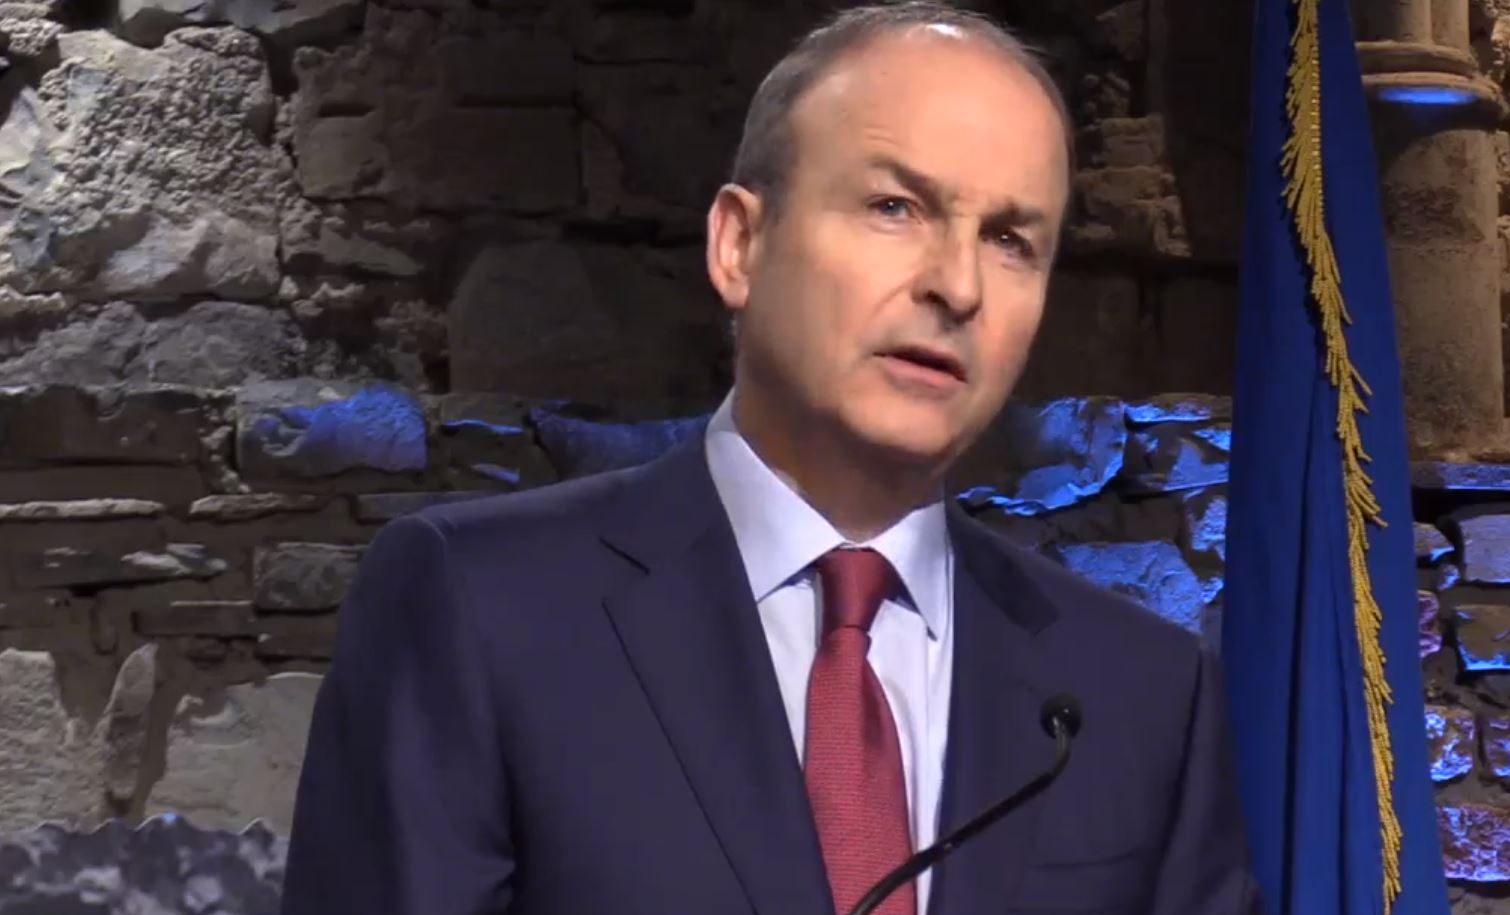 Fianna Fáil commits to 'fair price for farmers' in manifesto